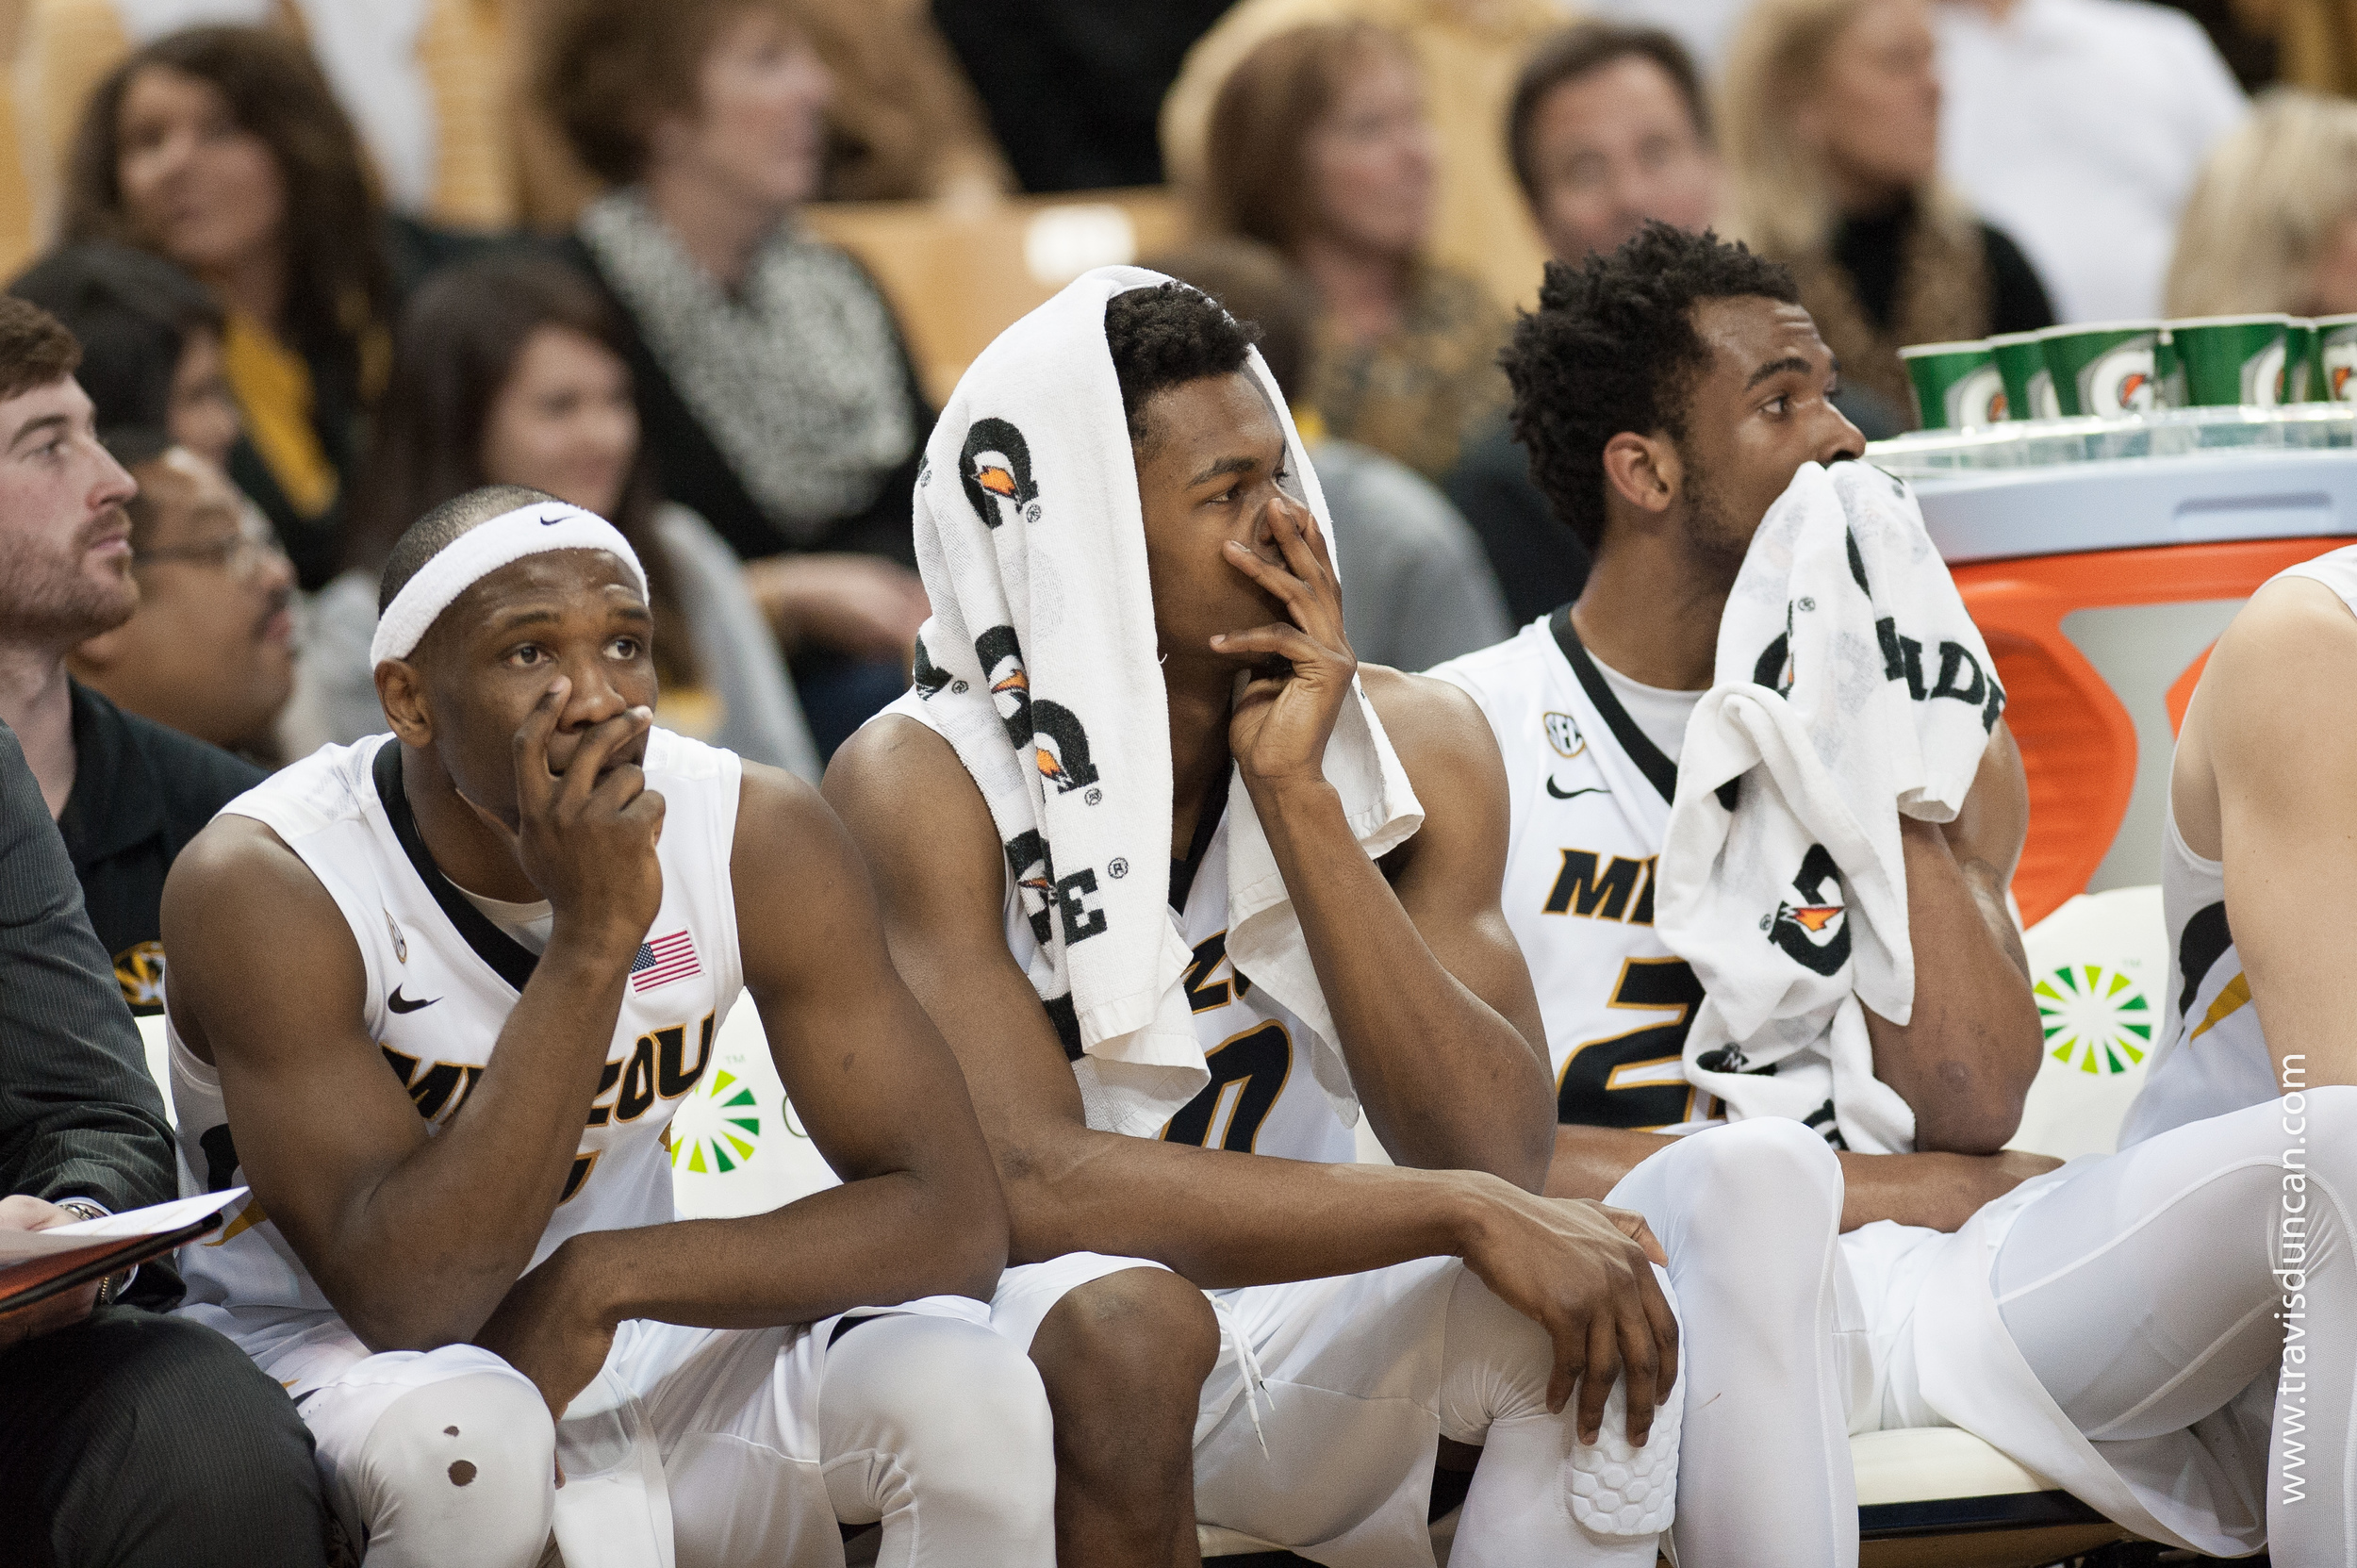 Mizzou_Bench_Losing_Expressions.jpg